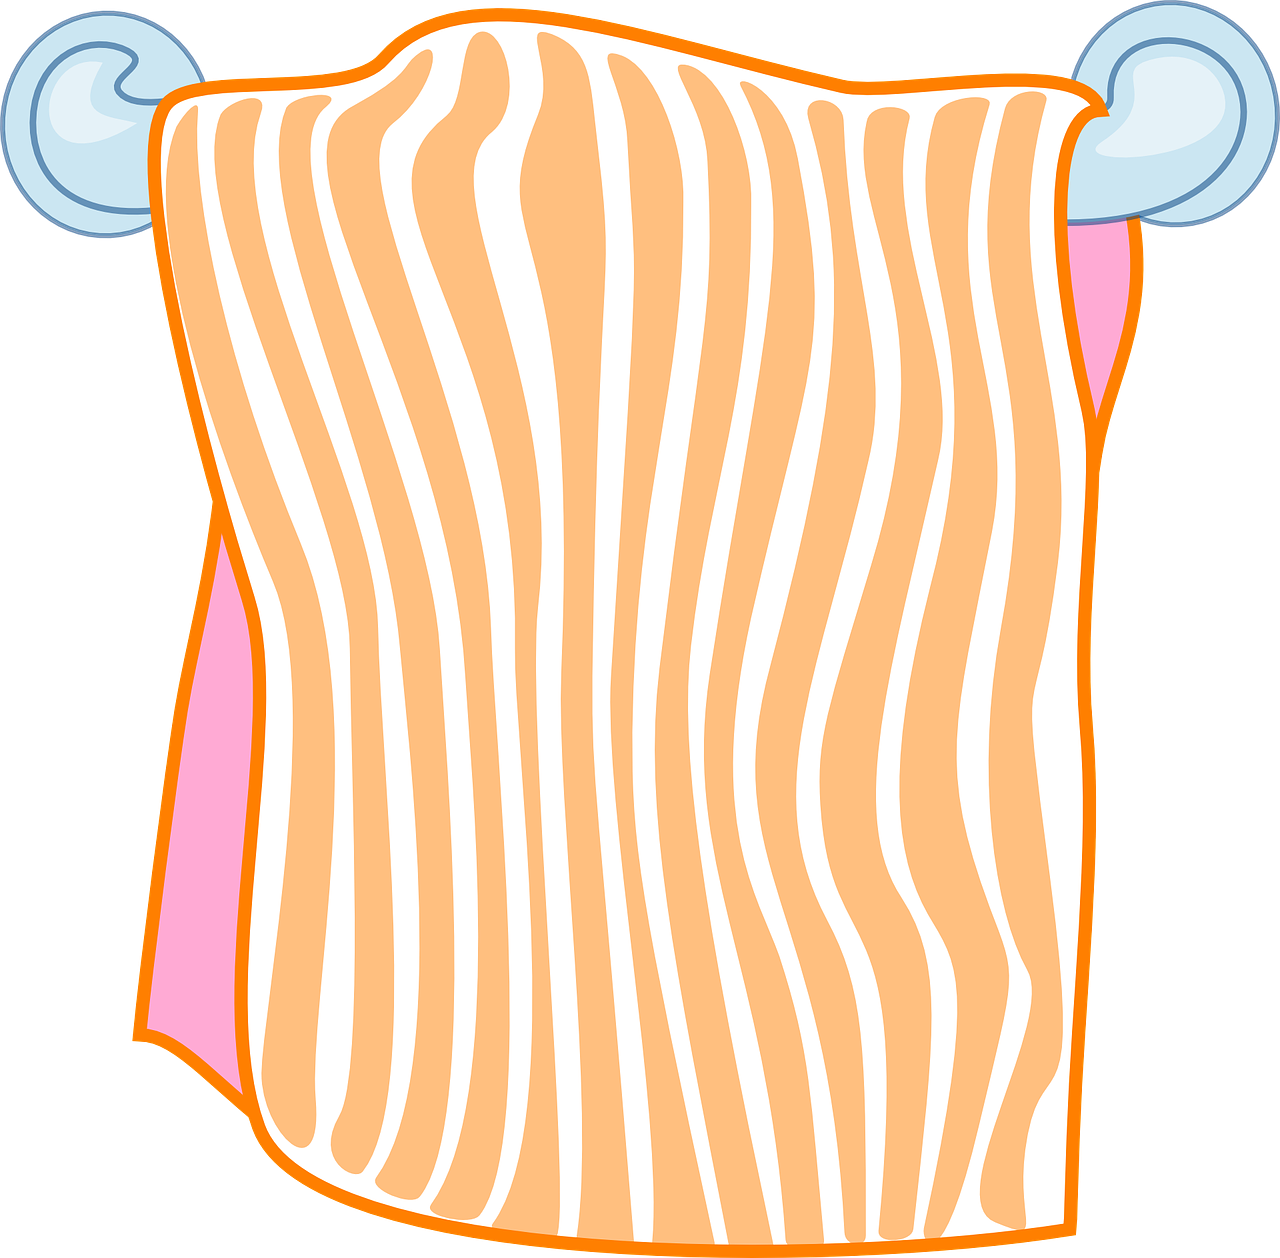 Wet towel free clipart png royalty free Towel,hygiene,bath,bathroom,clean - free photo from needpix.com png royalty free